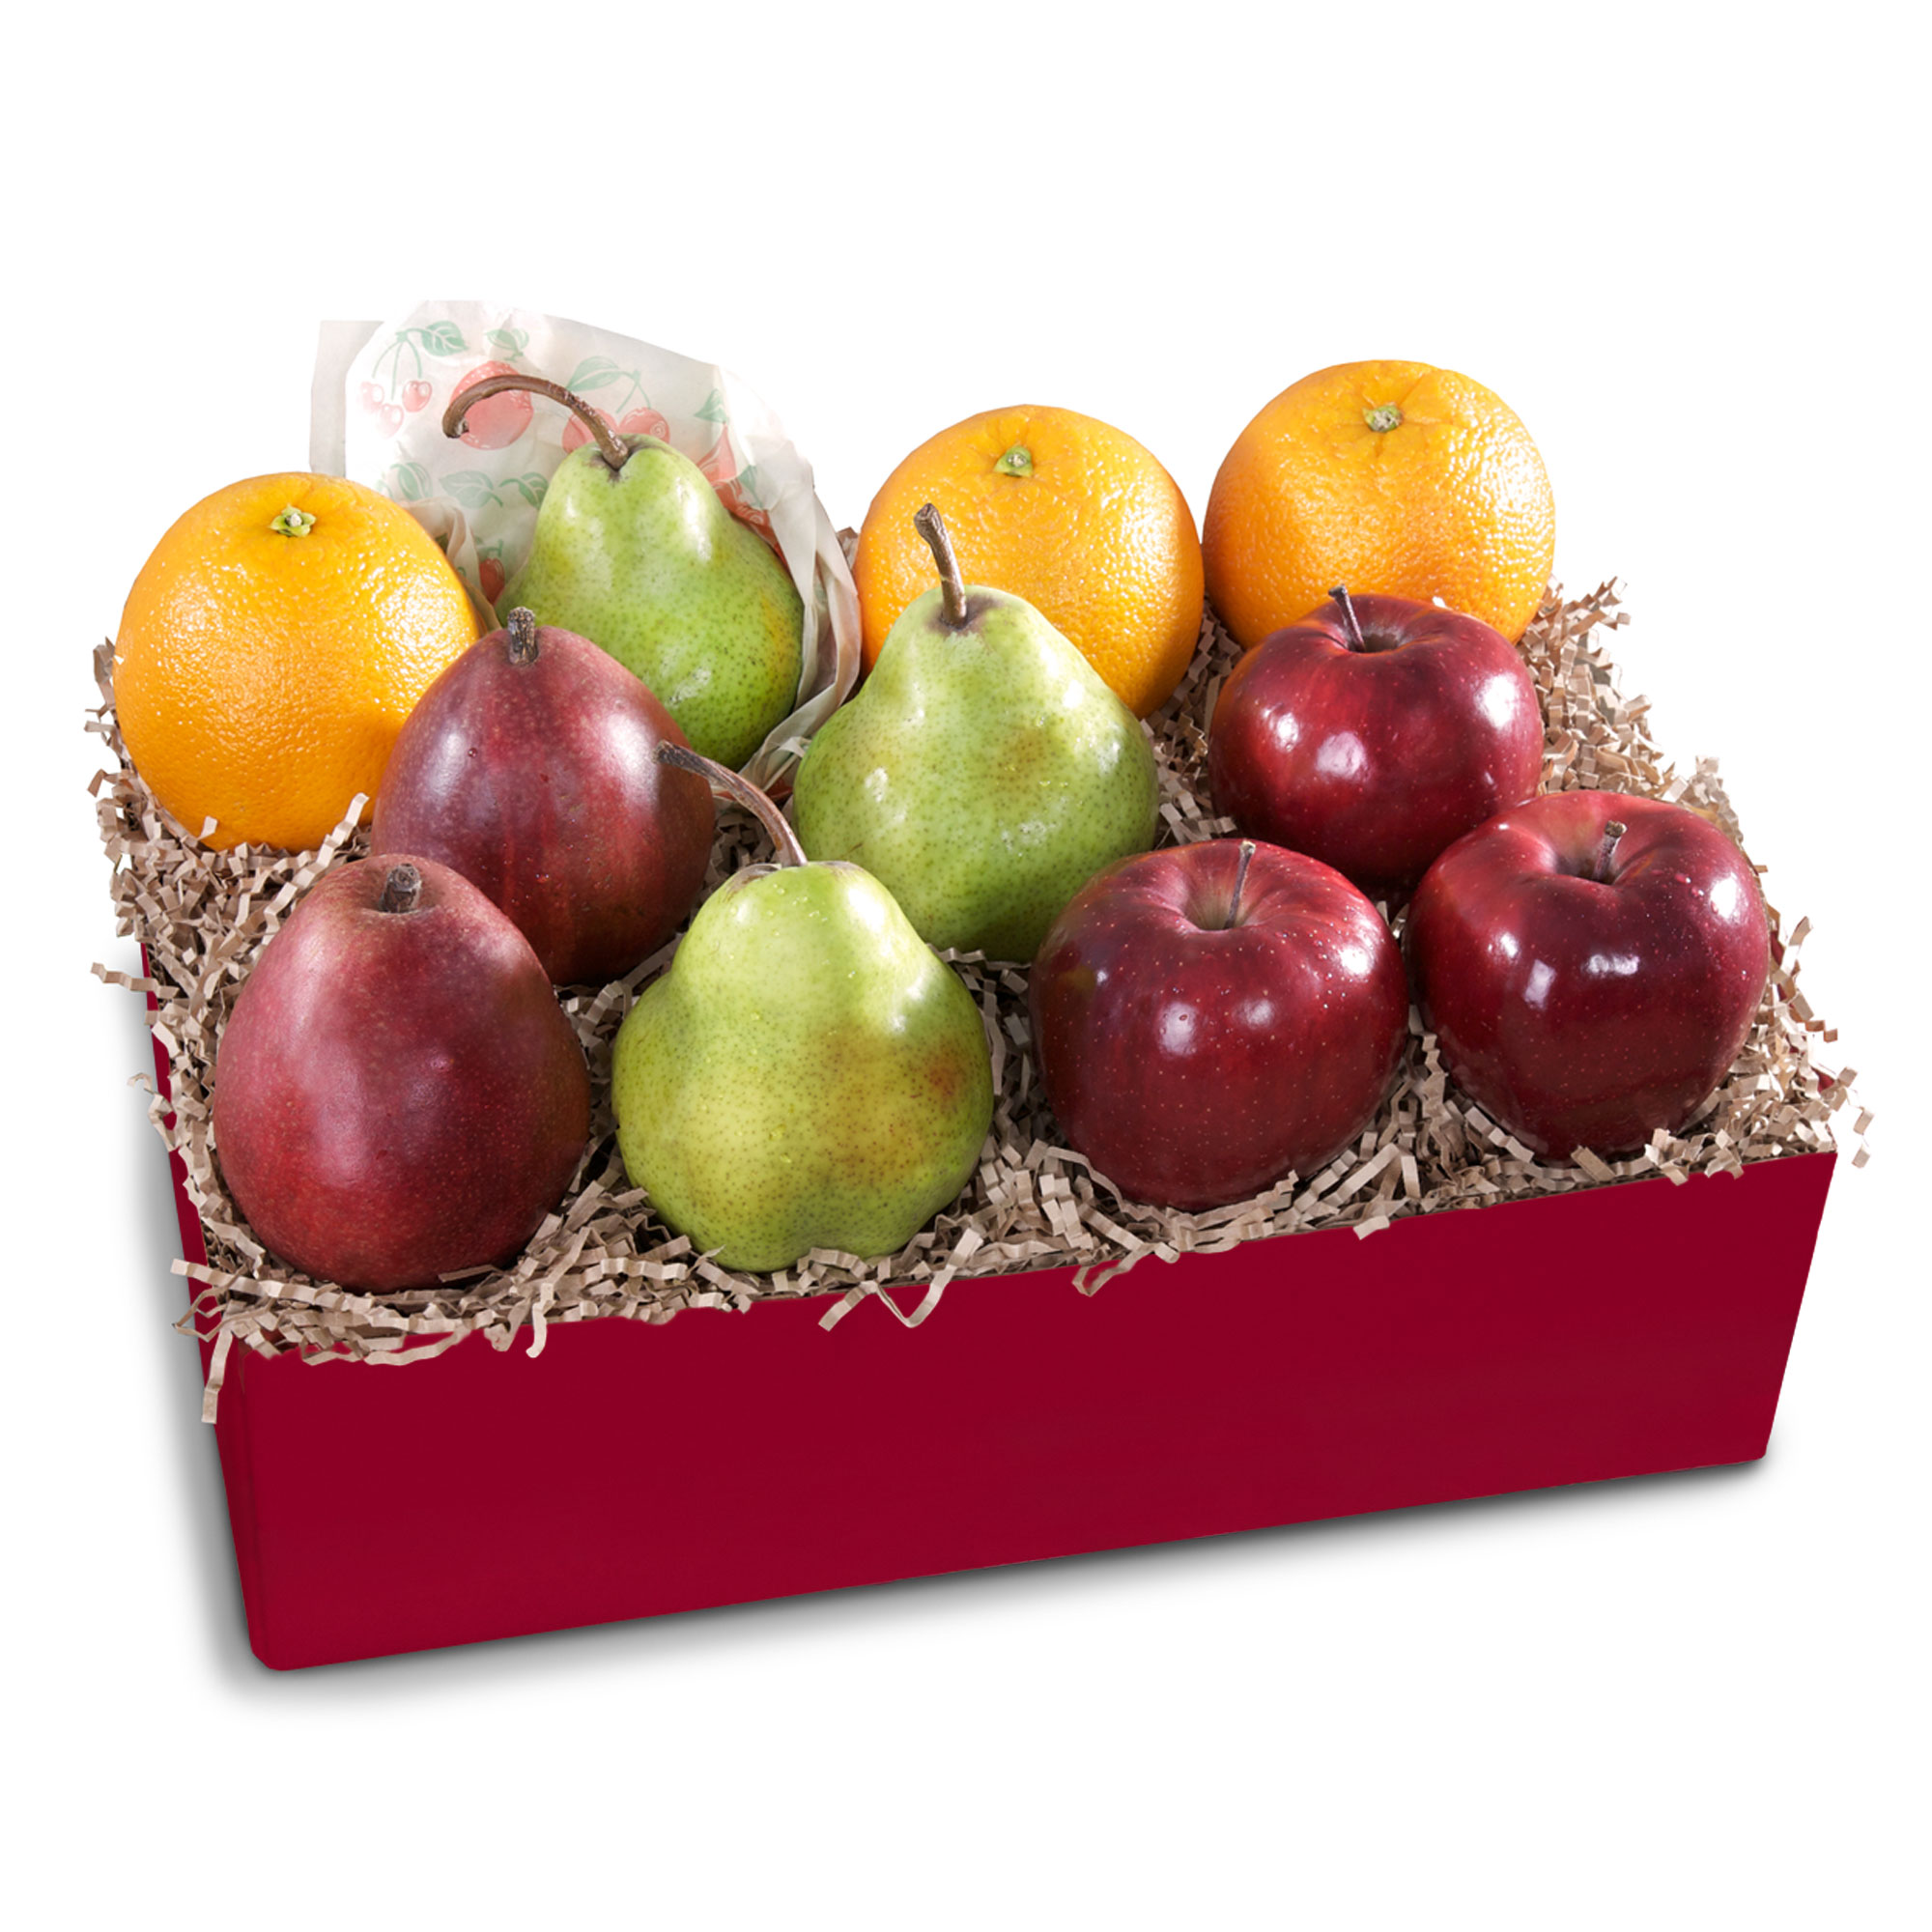 Fresh Fruit Medley Gift Box Gift | Purchase Our Fruit Gift from ...